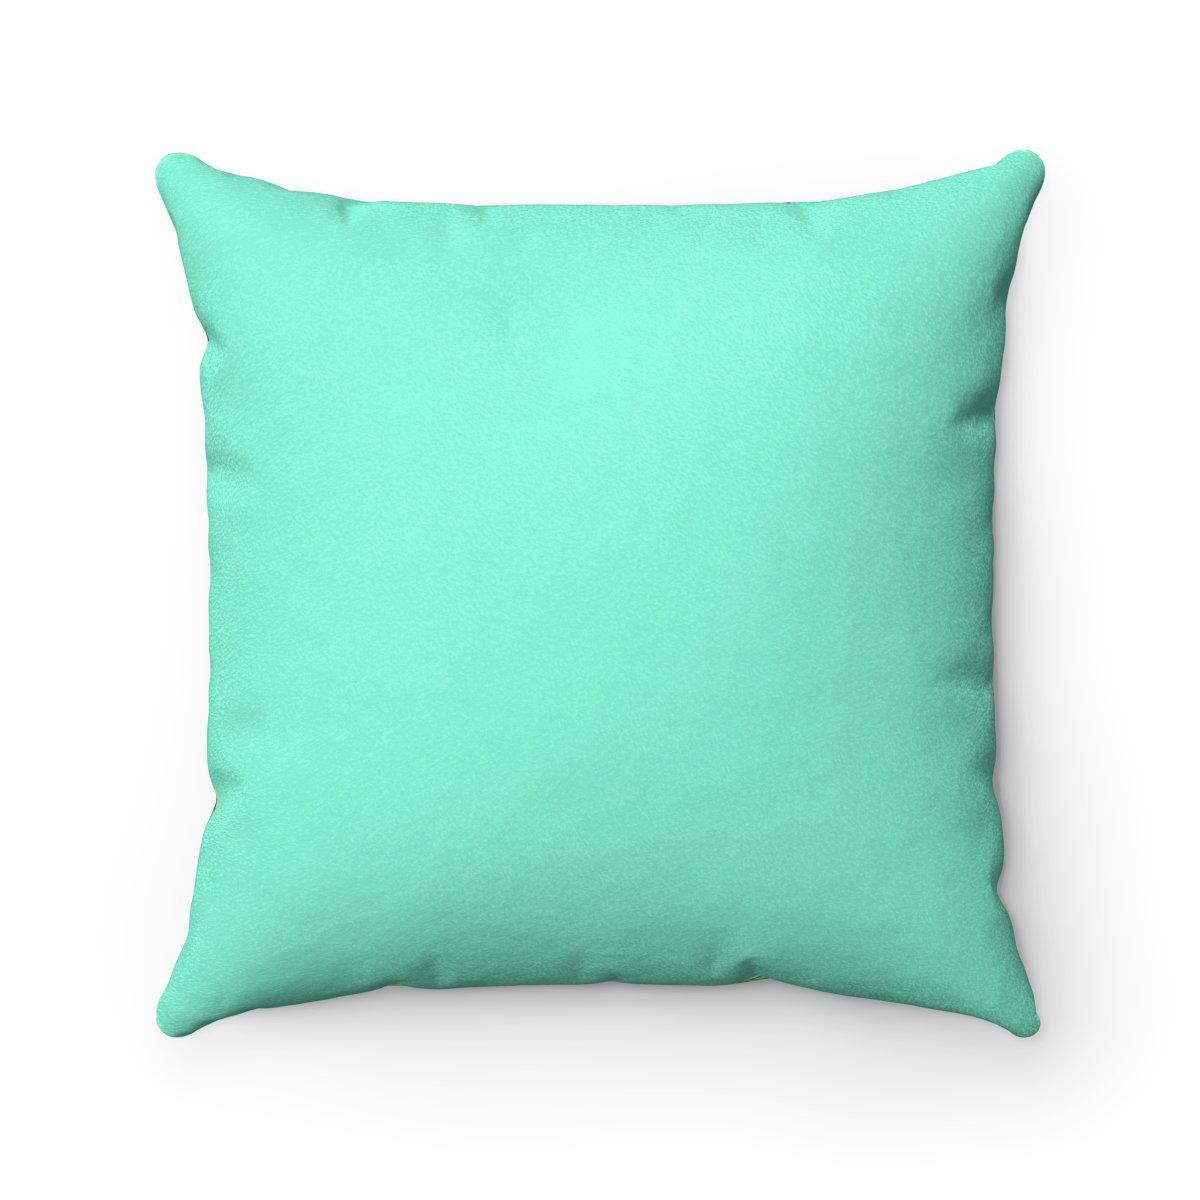 Turquoise Faux suede 2 in 1 tribal decorative pillow w/insert-Home Decor - Decorative Accents - Pillows & Throws - Decorative Pillows-Maison d'Elite-Très Elite